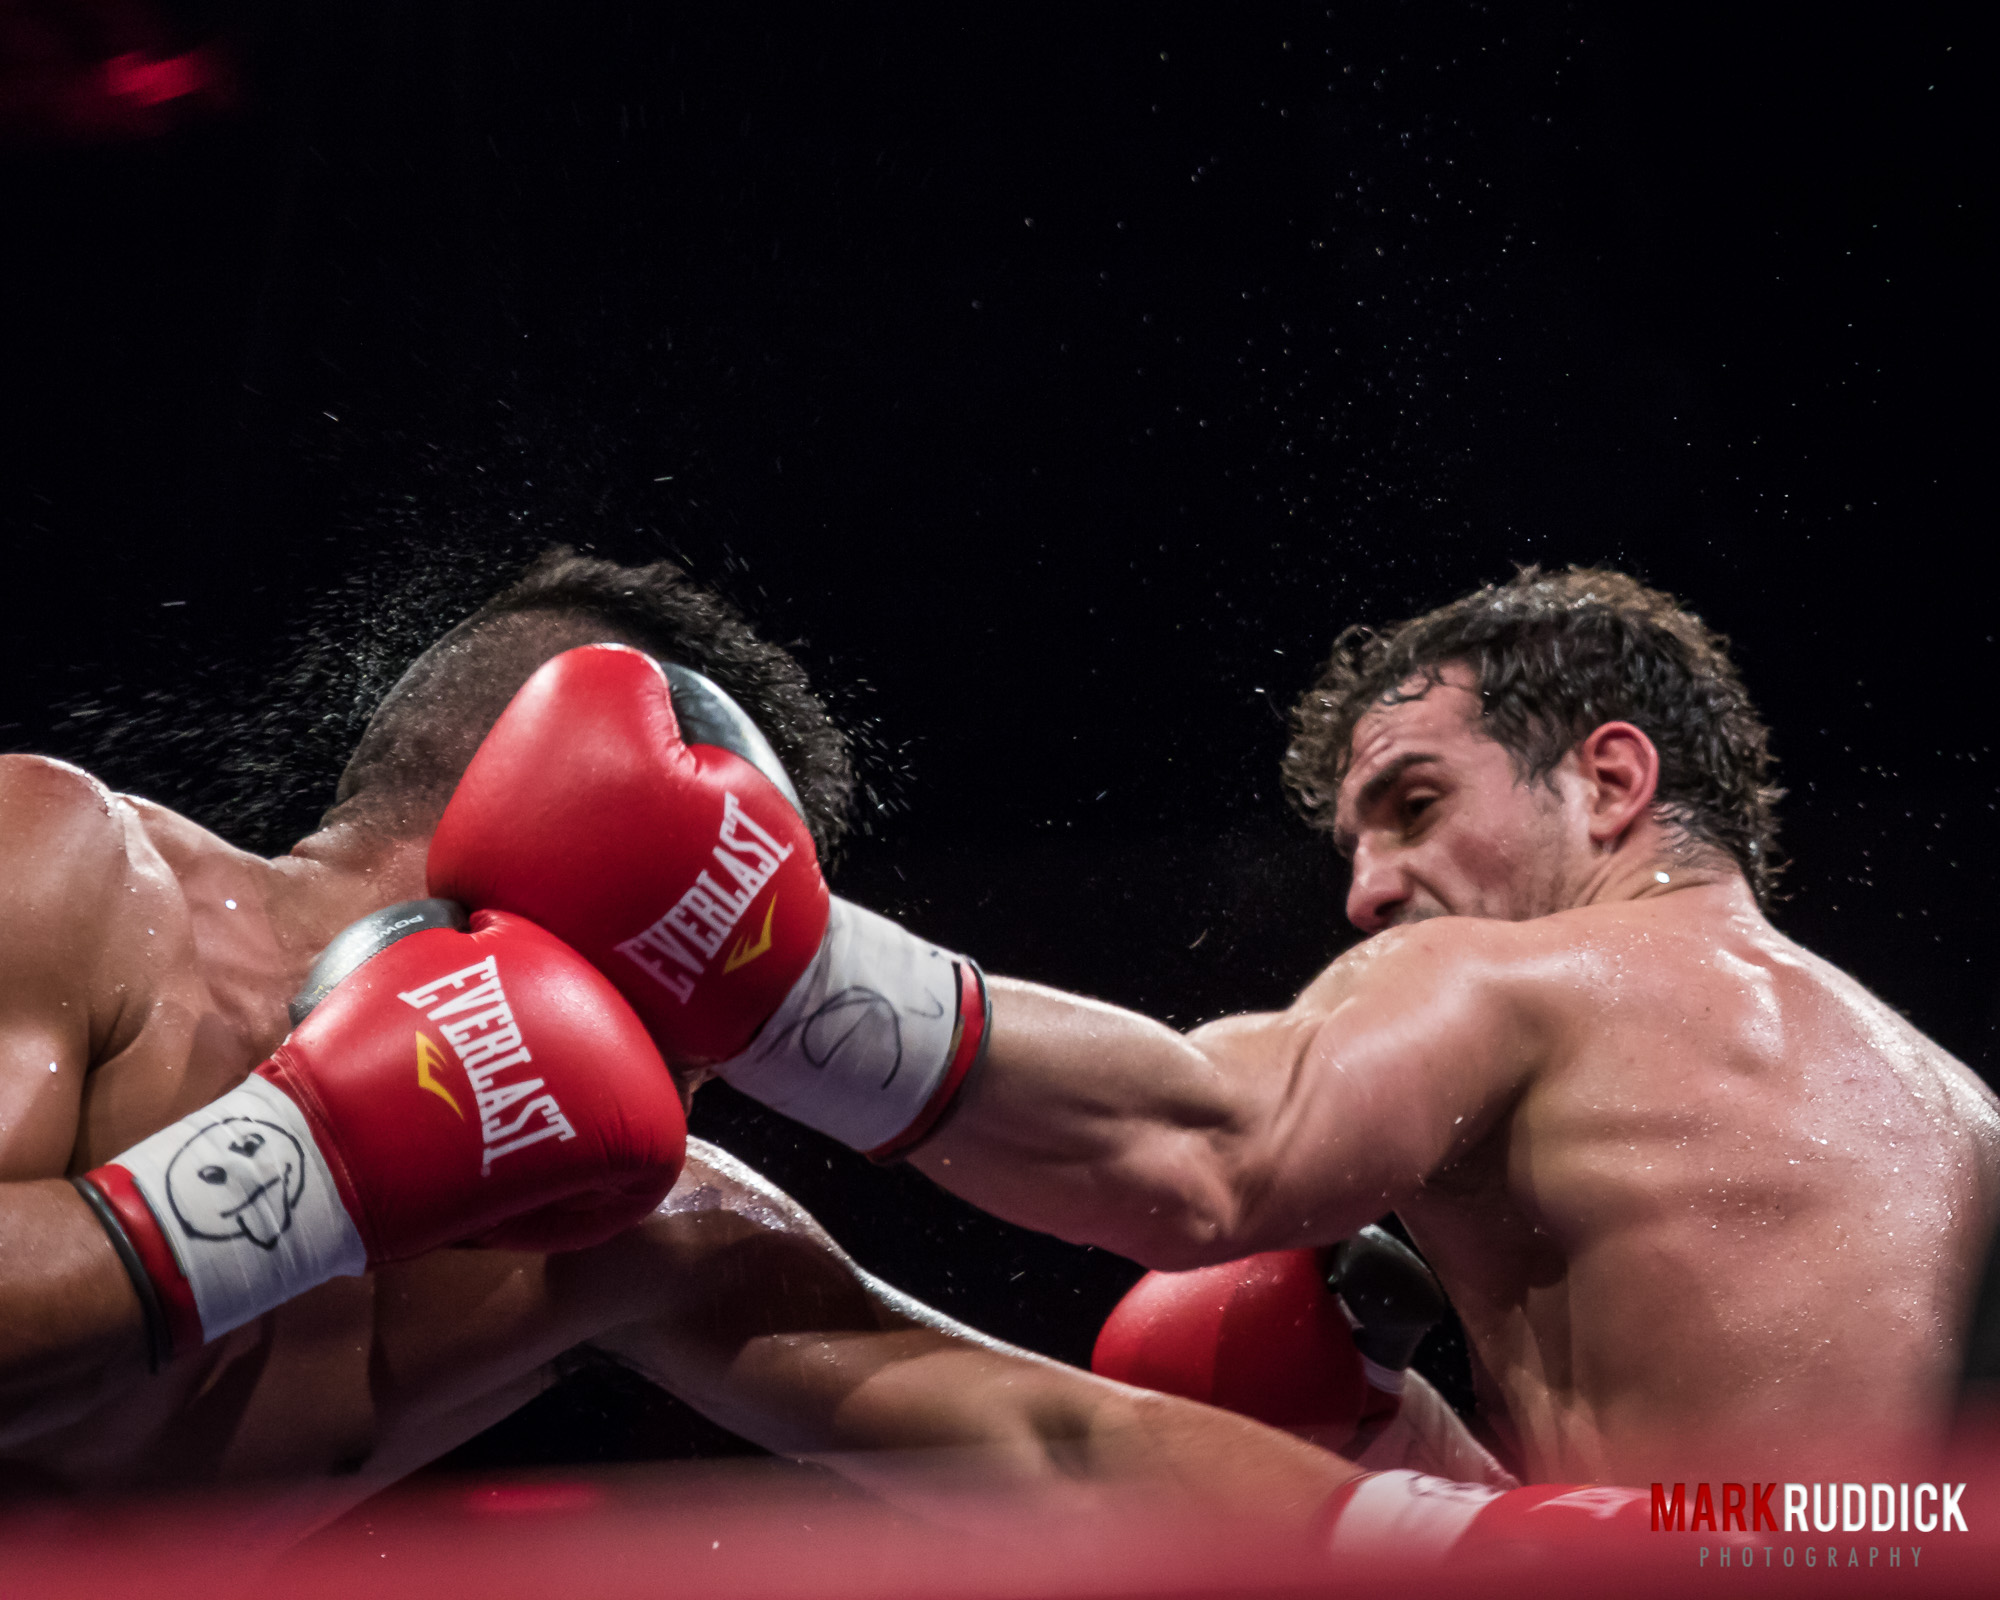 Main Event - Niagara Falls Boxer Phil Lo Greco wins by decision